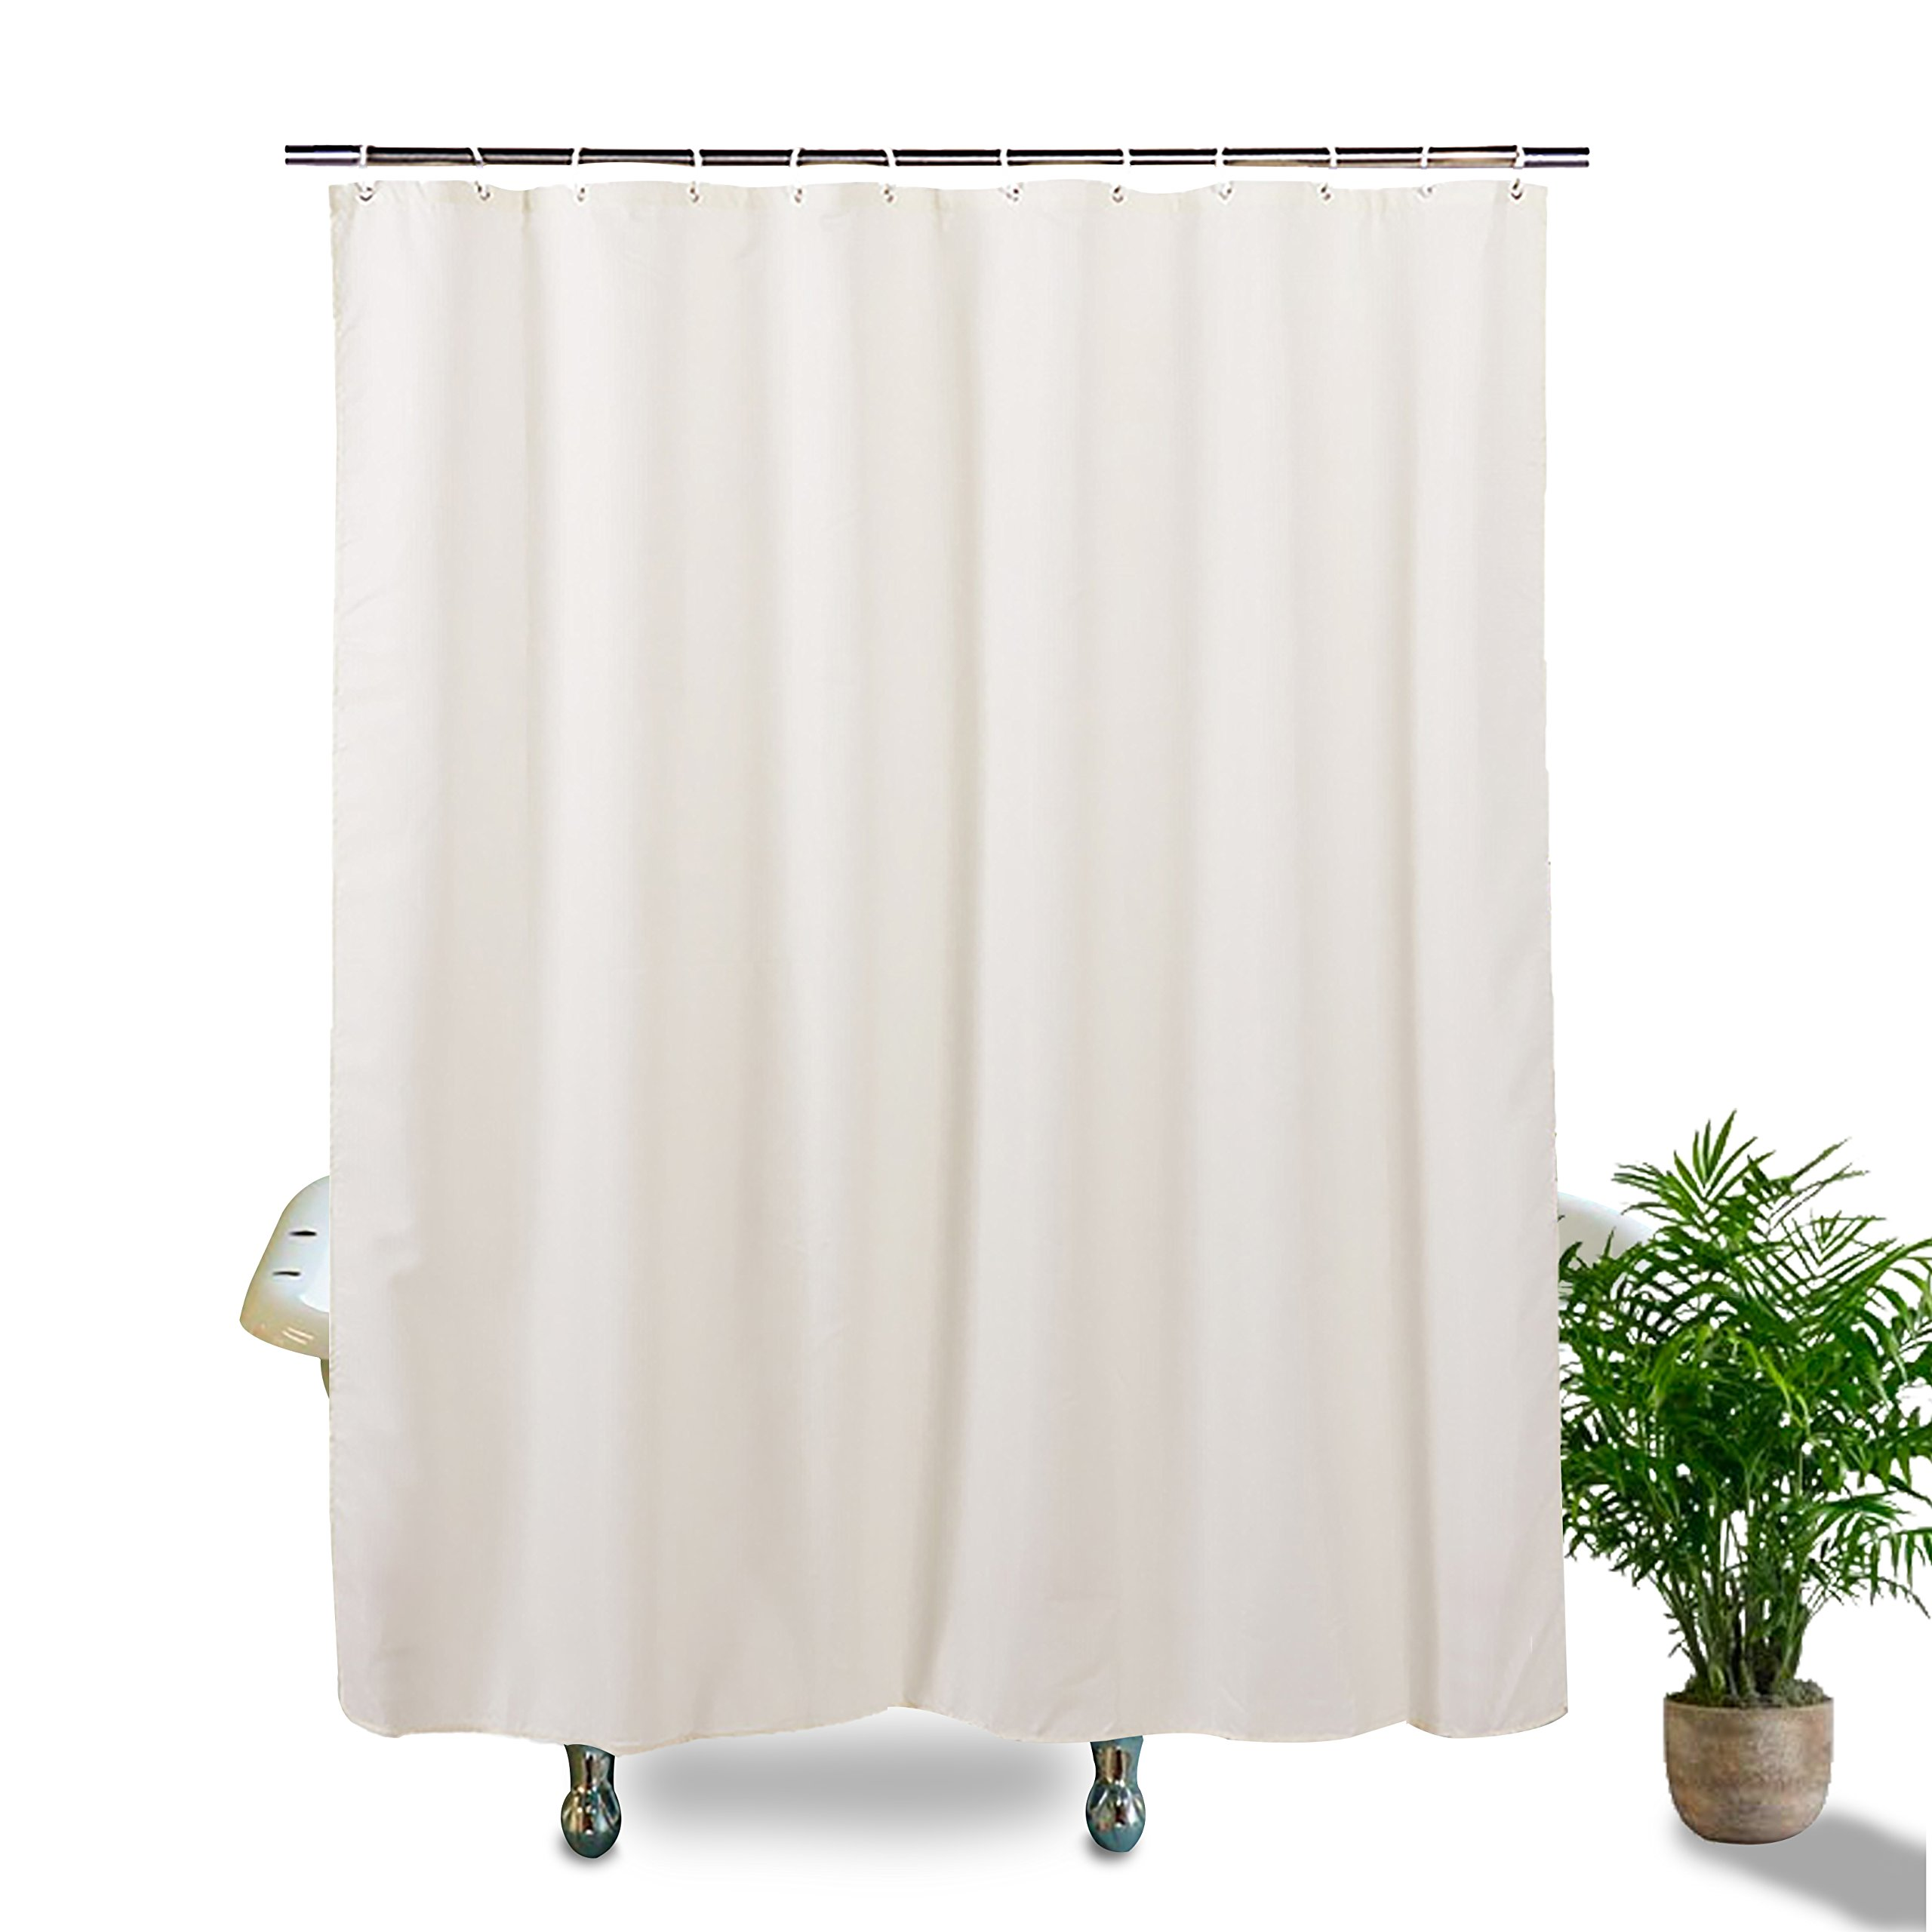 Hishreno Luxury Fabric Shower Curtain Liner, Mold/Mildew Resistant, Antibacterial and Water Repellent -Textured, Hotel Quality, White 72x72 - Includes Rust Proof Metal Hooks